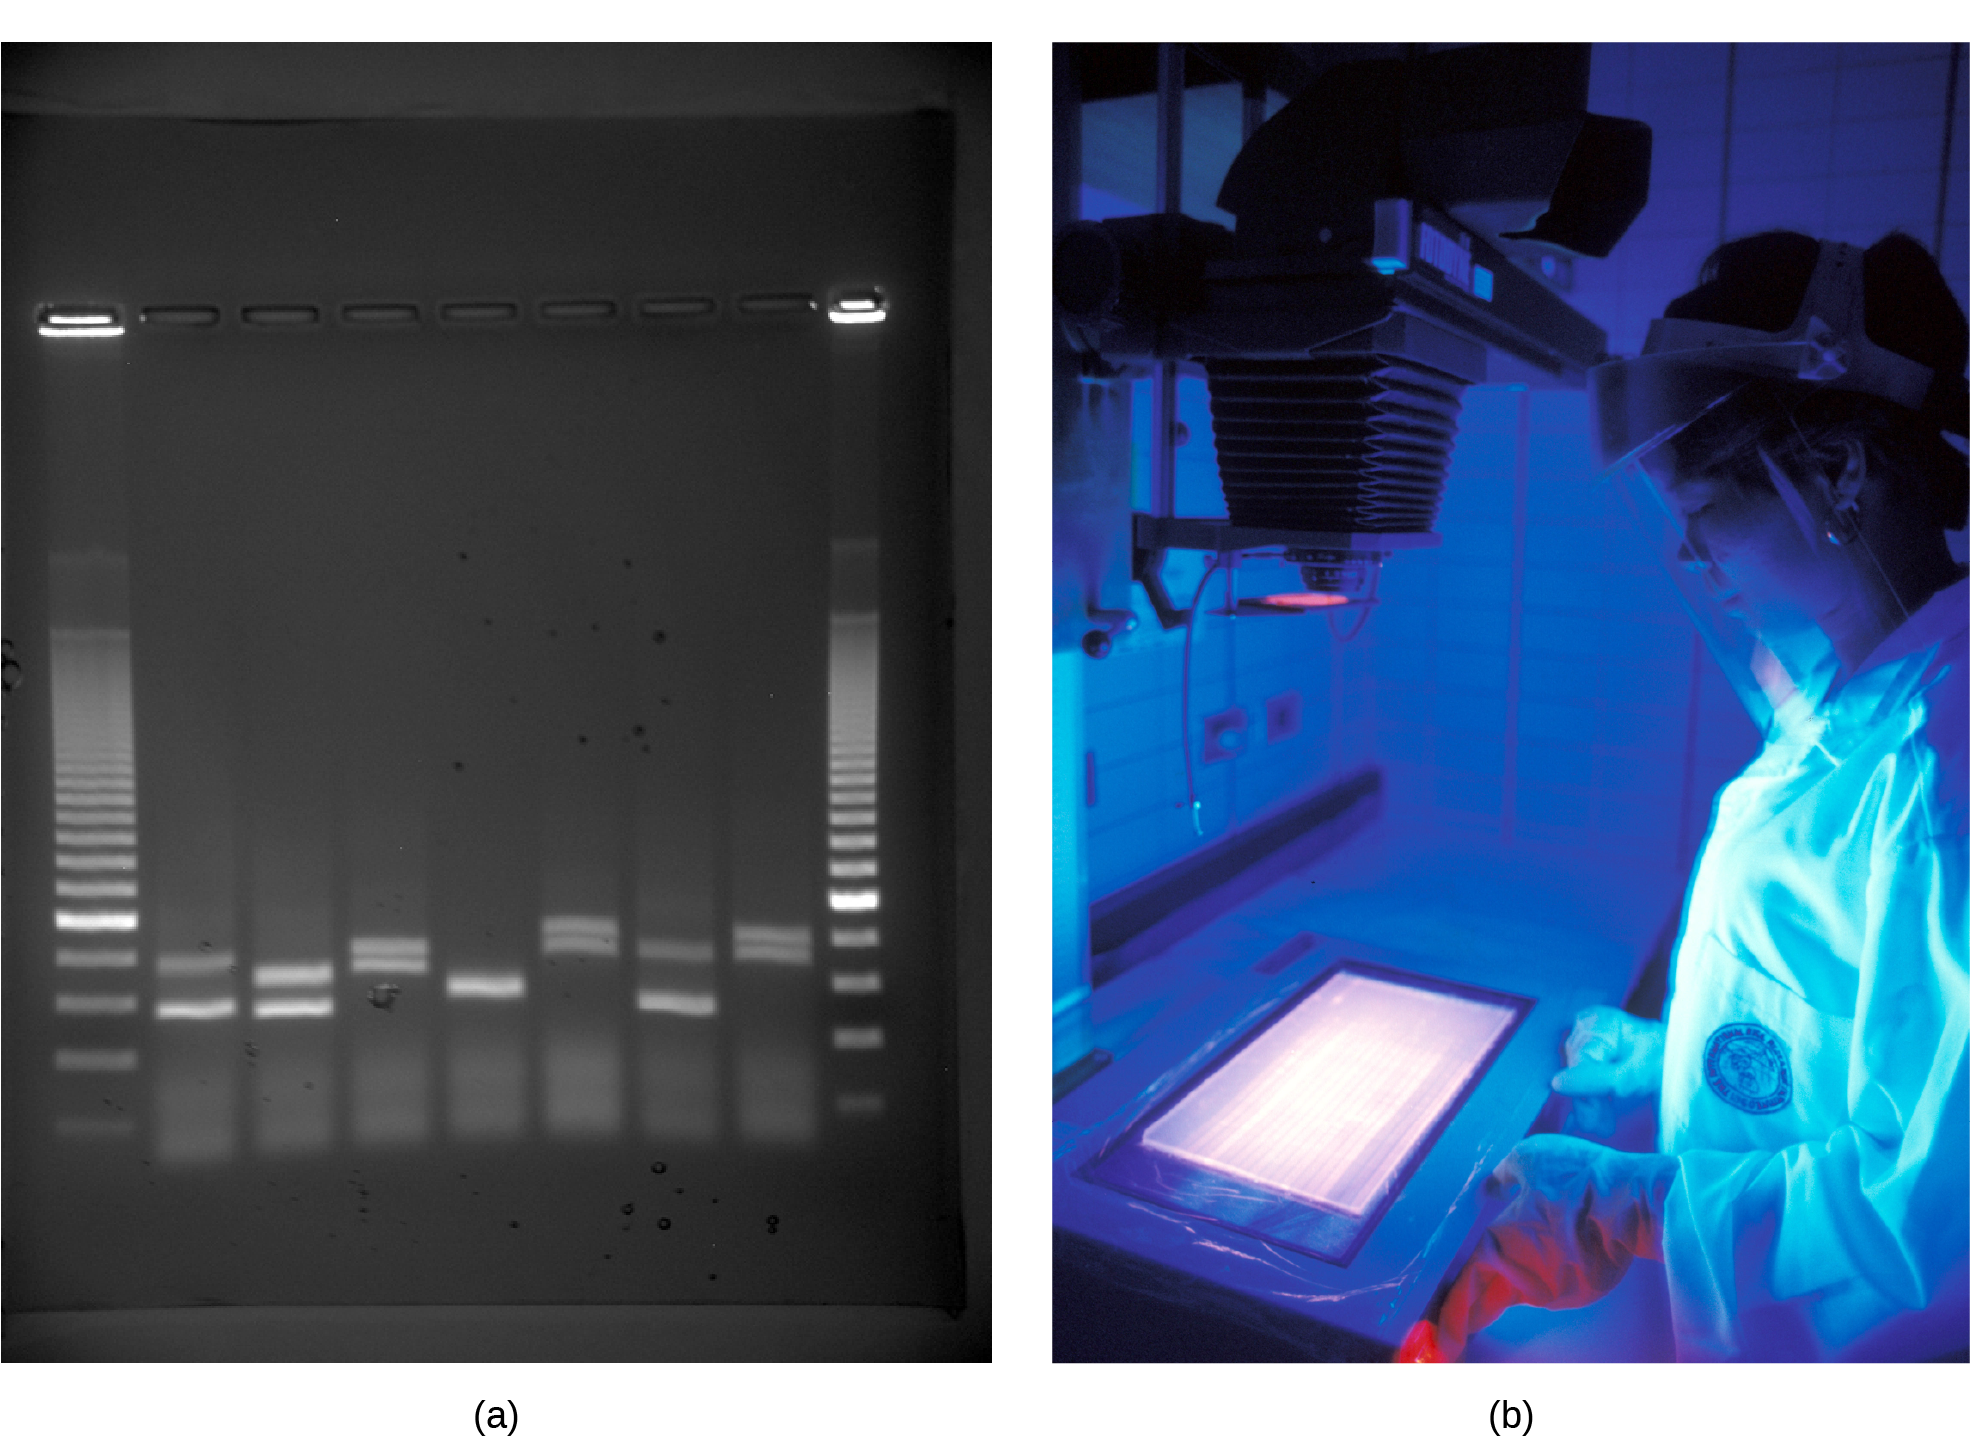 Photo shows an agarose gel illuminated under U V light. The gel contains nine lanes from left to right. Each lane was loaded with a sample containing D N A fragments of differing size that separated as they travelled through the gel from top to bottom. The D N A appears as thin, white bands on a black background. Lanes one and nine contain many bands from a D N A standard. These bands are closely spaced toward the top, and spaced farther apart further down the gel. Lanes two through eight contain one or two bands each. Some of these bands are identical in size and run the same distance into the gel. Others run a slightly different distance, indicating a small difference in size. Image b shows a researcher working at a machine where she is observing D N A under ultraviolet light.